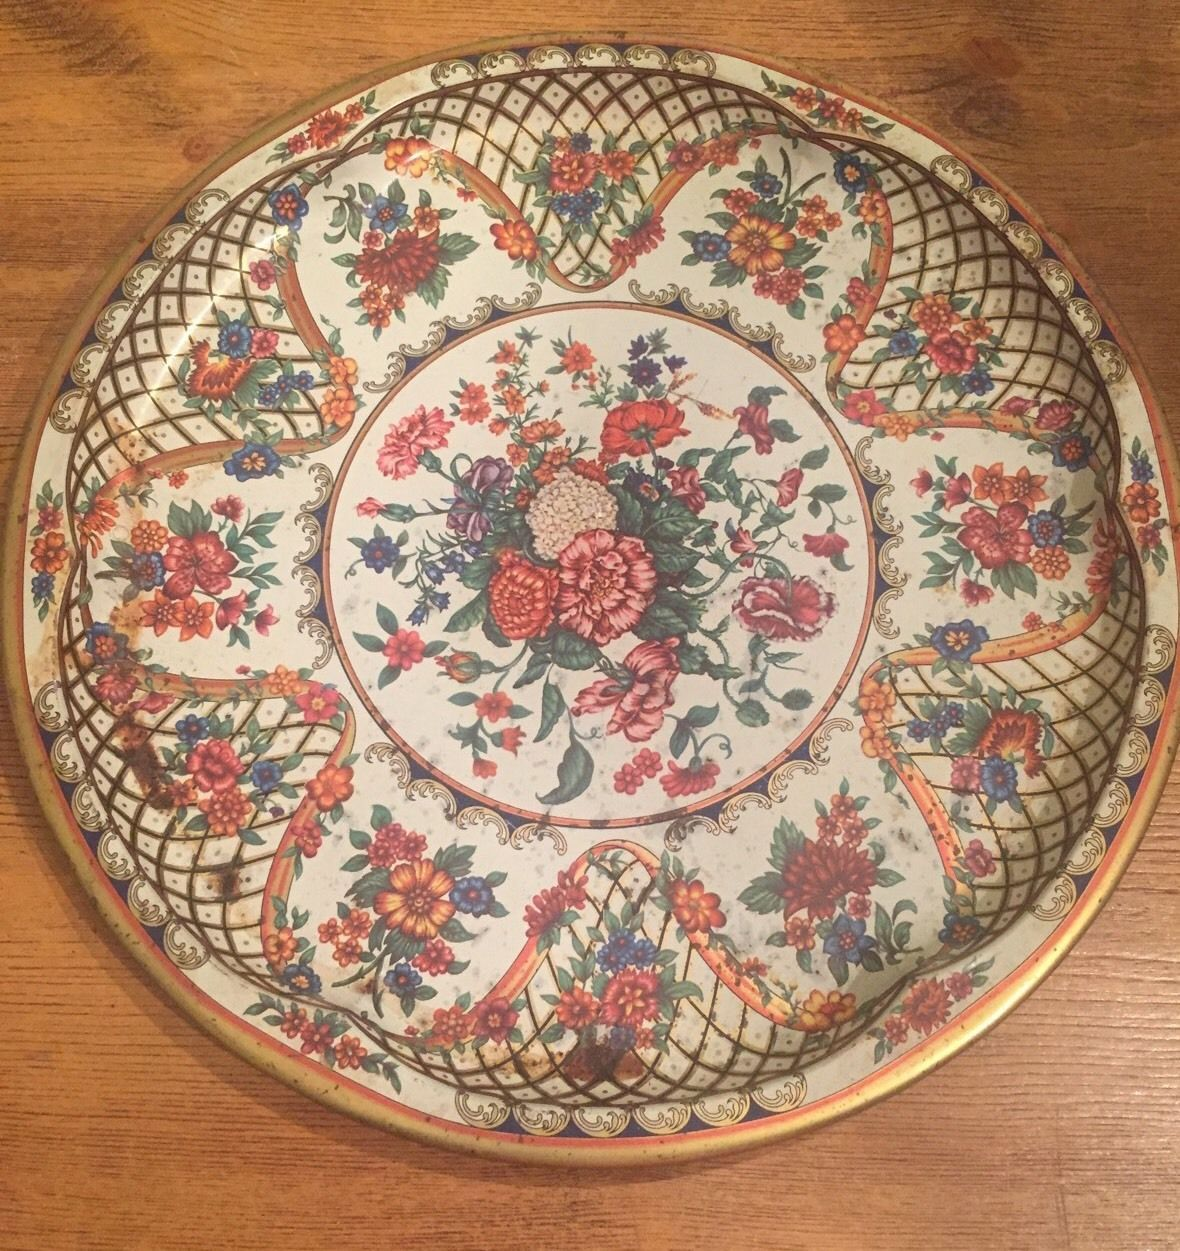 Daher Decorated Ware Tray Made In England Amusing Daher Decorated Ware Large Floral Metal Serving Tray Made In Design Inspiration